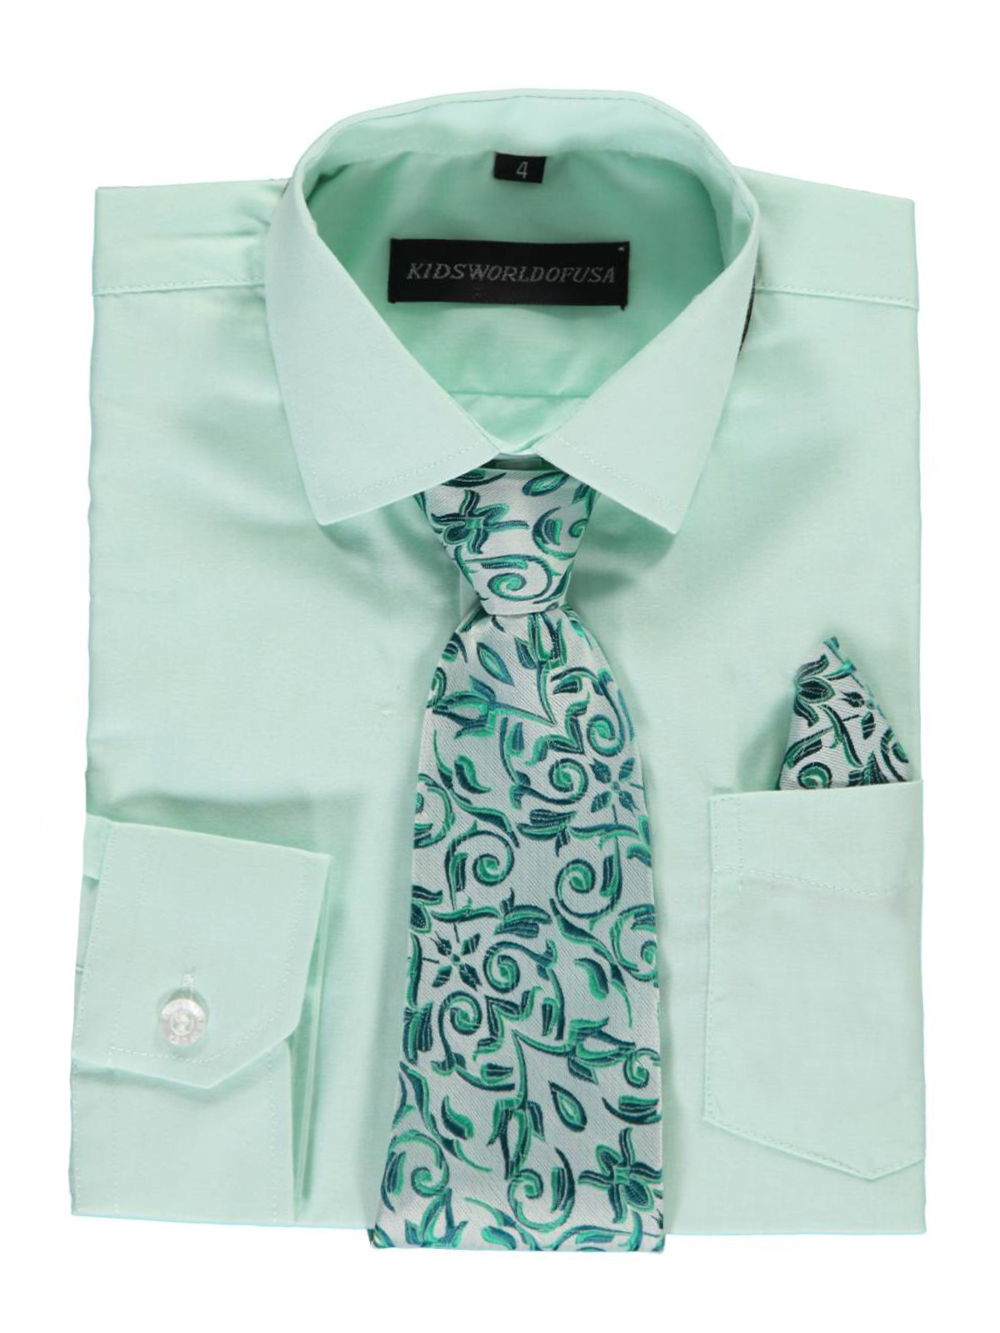 Kids World Little Boys Dress Shirt With Accessories Sizes 4 7